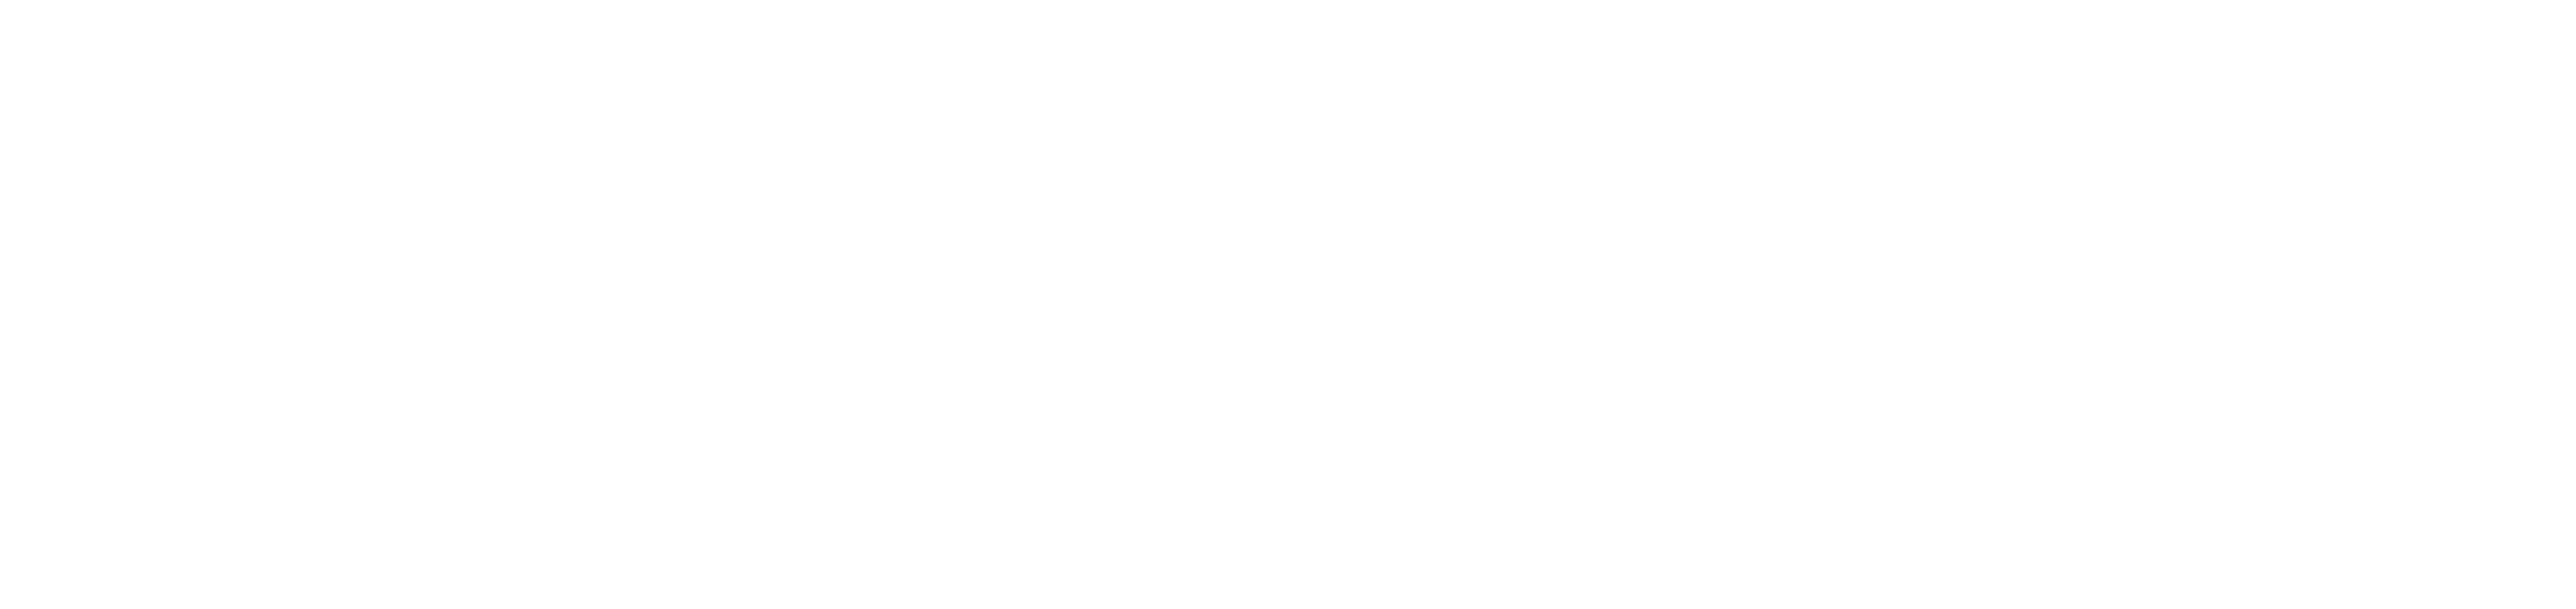 Emelec Electrical Testing & Compliance - white & transparent